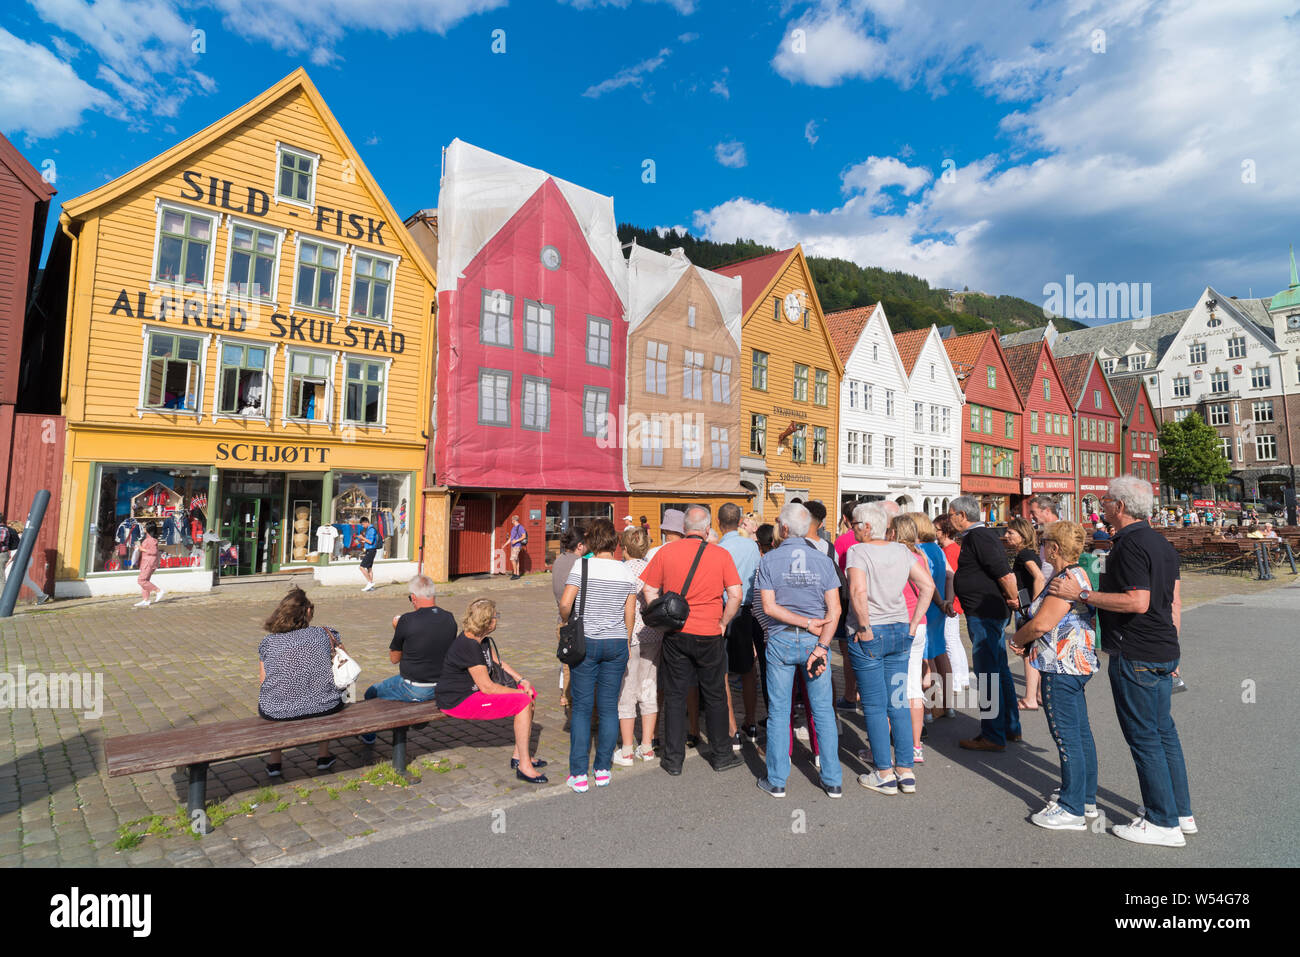 BERGEN, NORWAY - JULY 28, 2018: Tourists in front of the historical buildings in Bryggen- Hanseatic wharf. Bryggen has been on the UNESCO World Herita Stock Photo